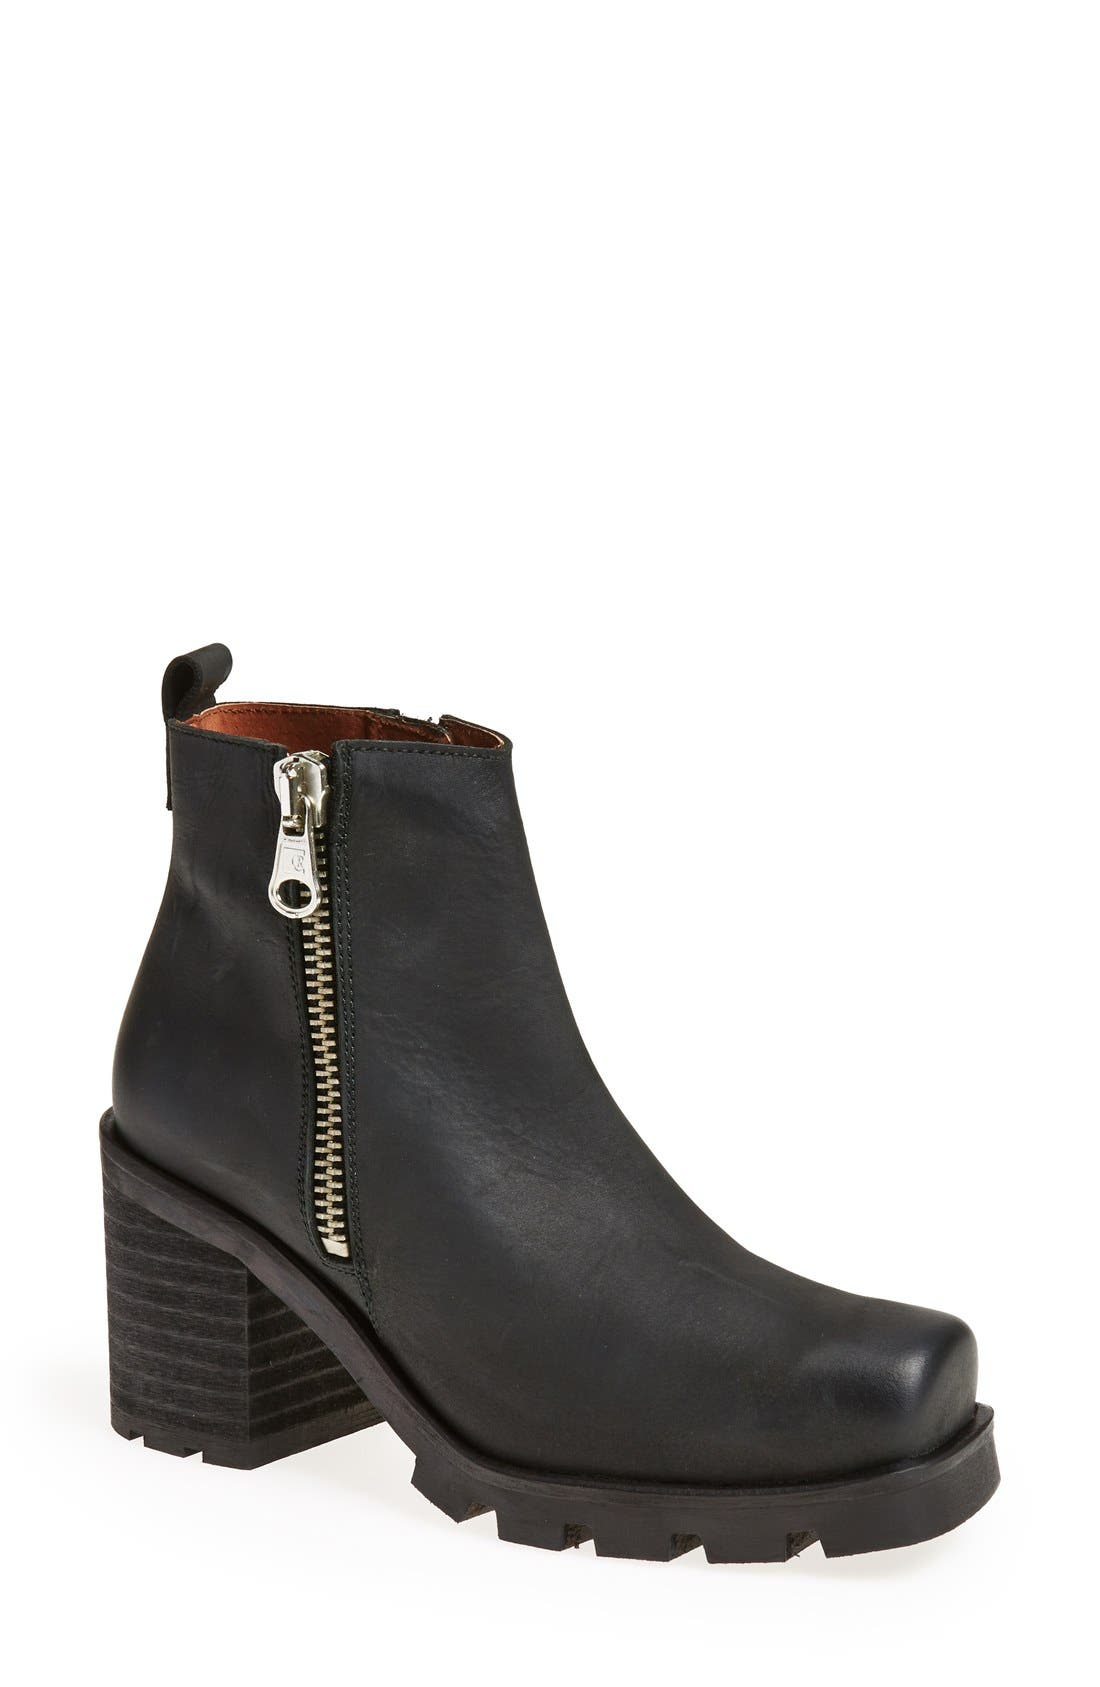 Main Image - SIXTYSEVEN 'Paige' Bootie (Women)